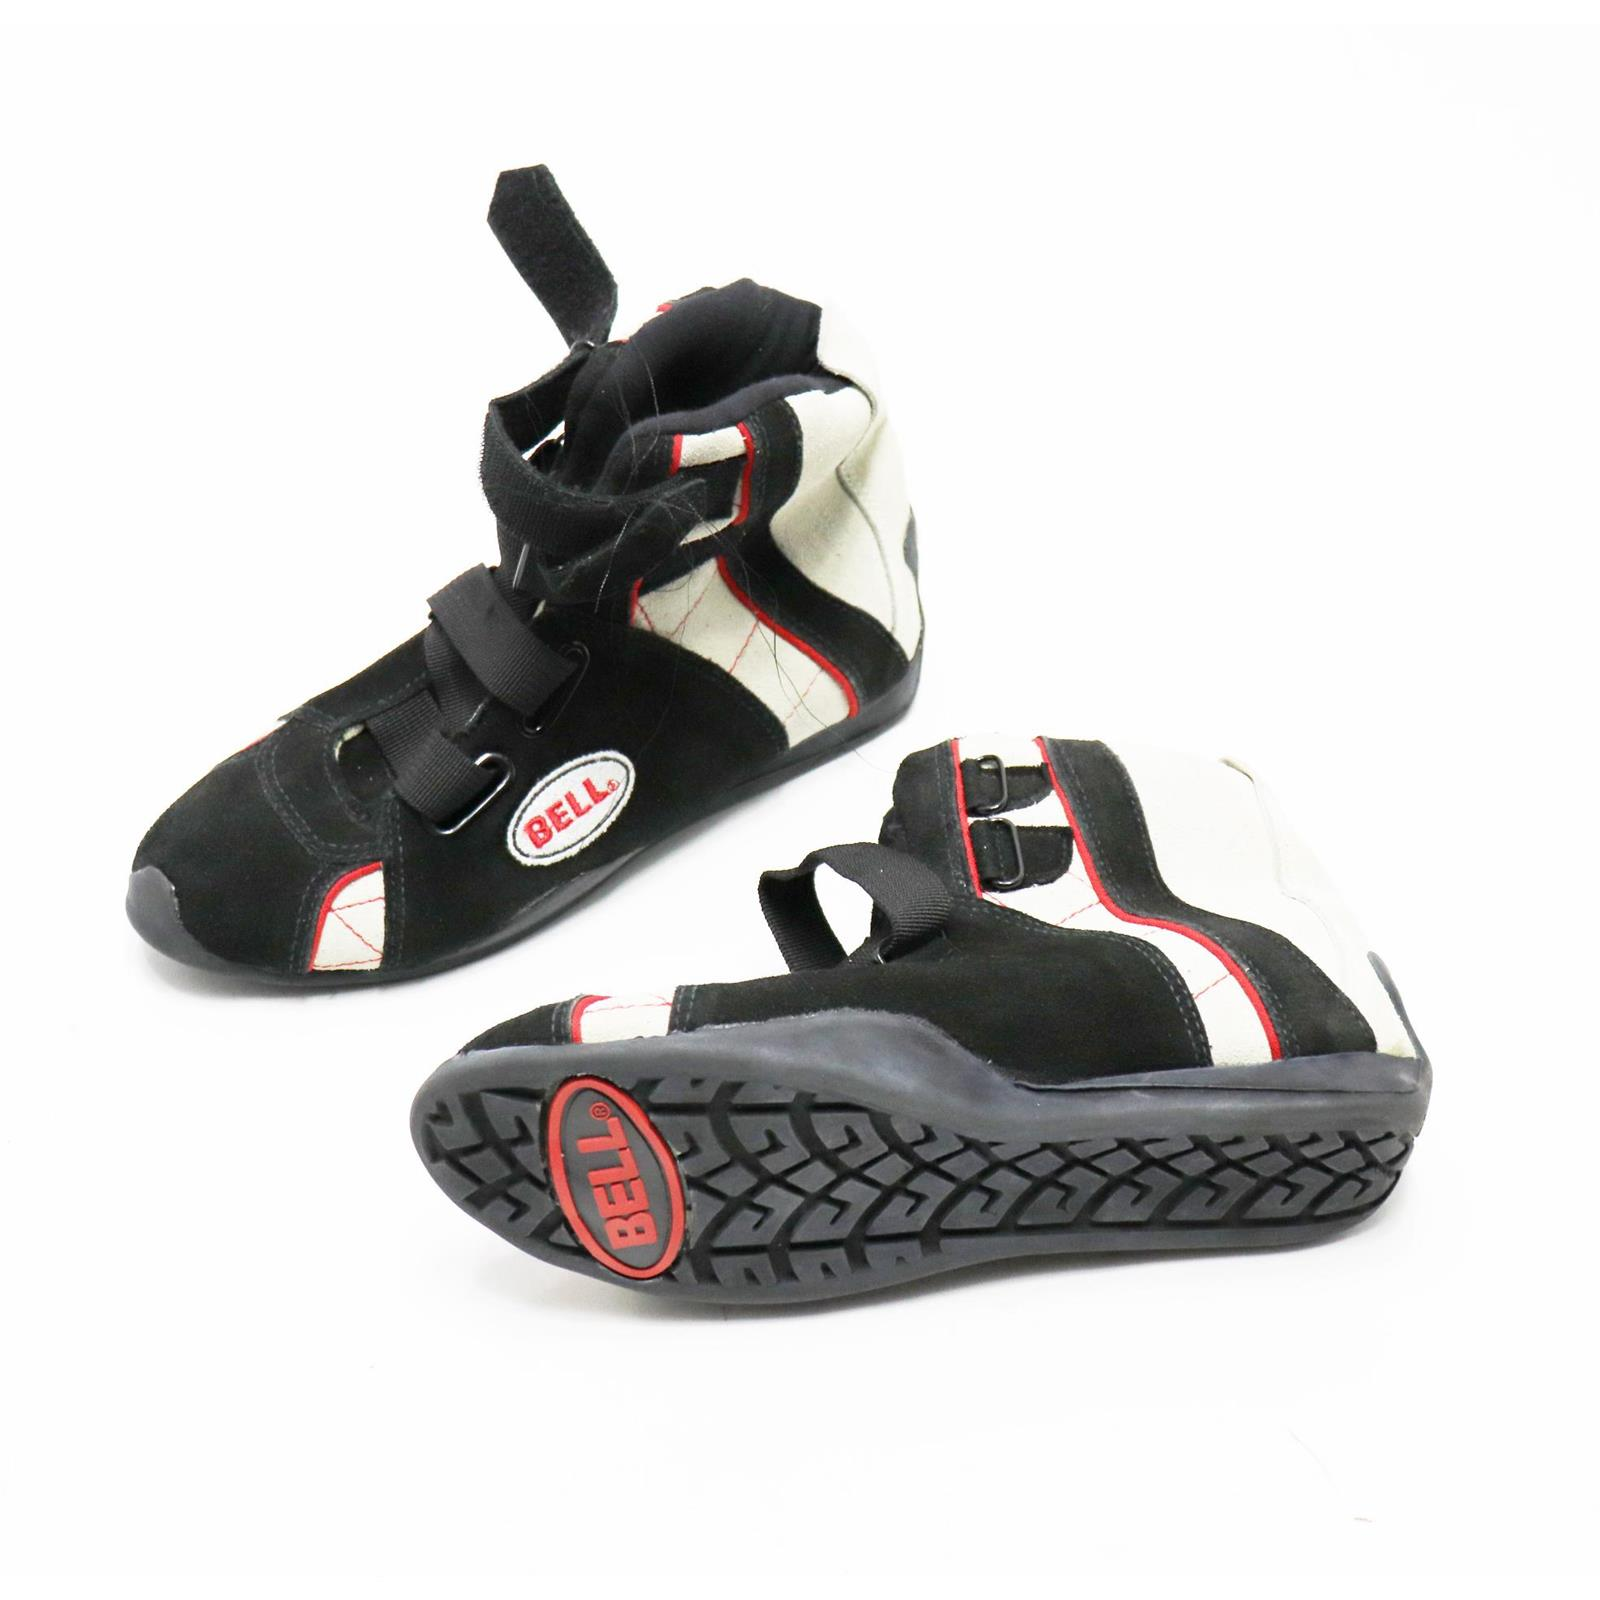 Bell Apex II SFI 3 3 5 Racing Shoes Black Red White Size 6 5